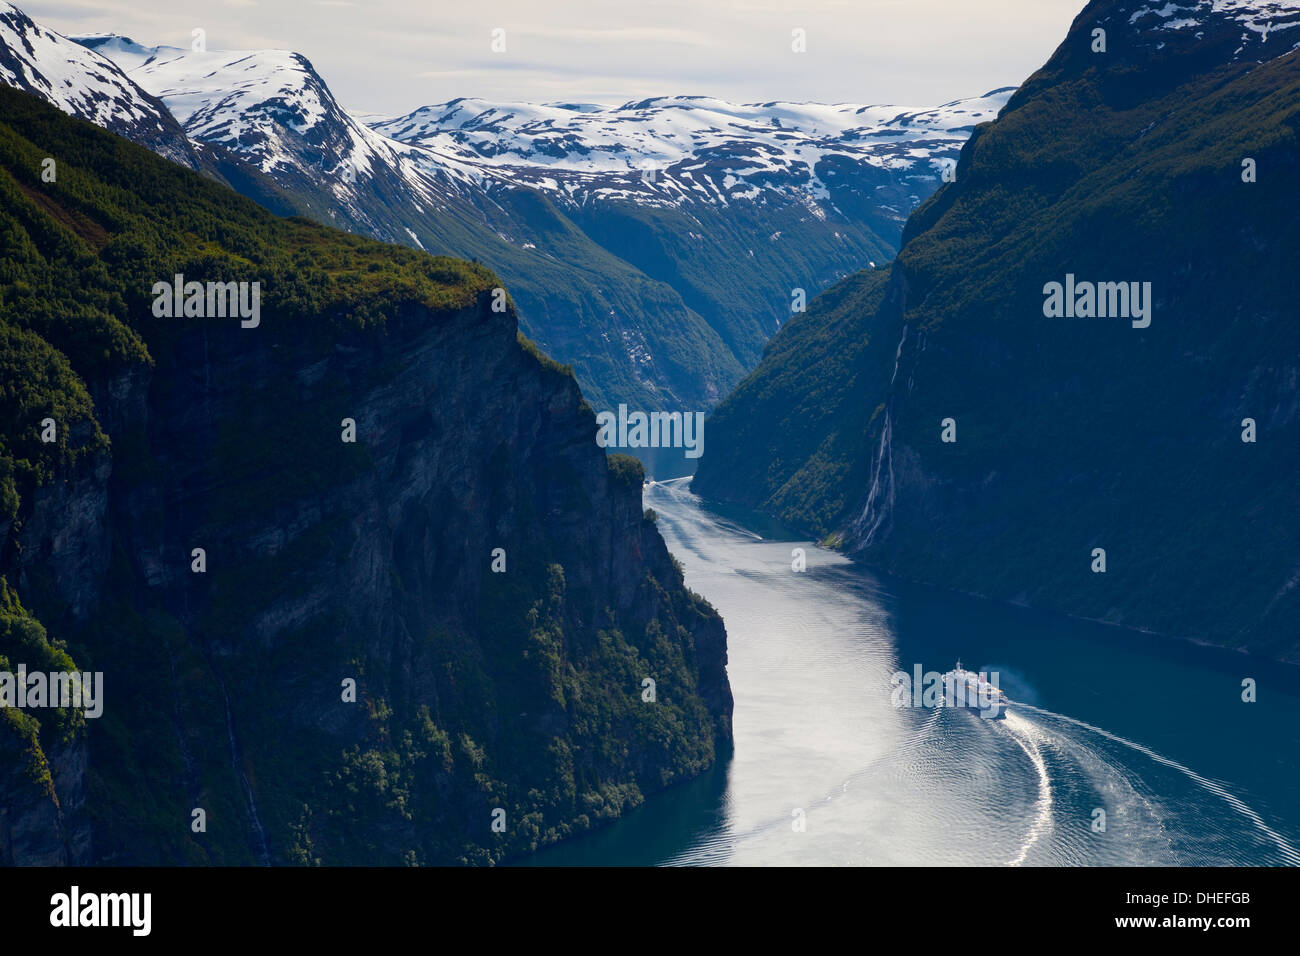 Cruise Boat on Fjord, Geiranger, Geiranger Fjord, UNESCO World Heritage Site, More og Romsdal, Norway, Scandinavia, Europe - Stock Image